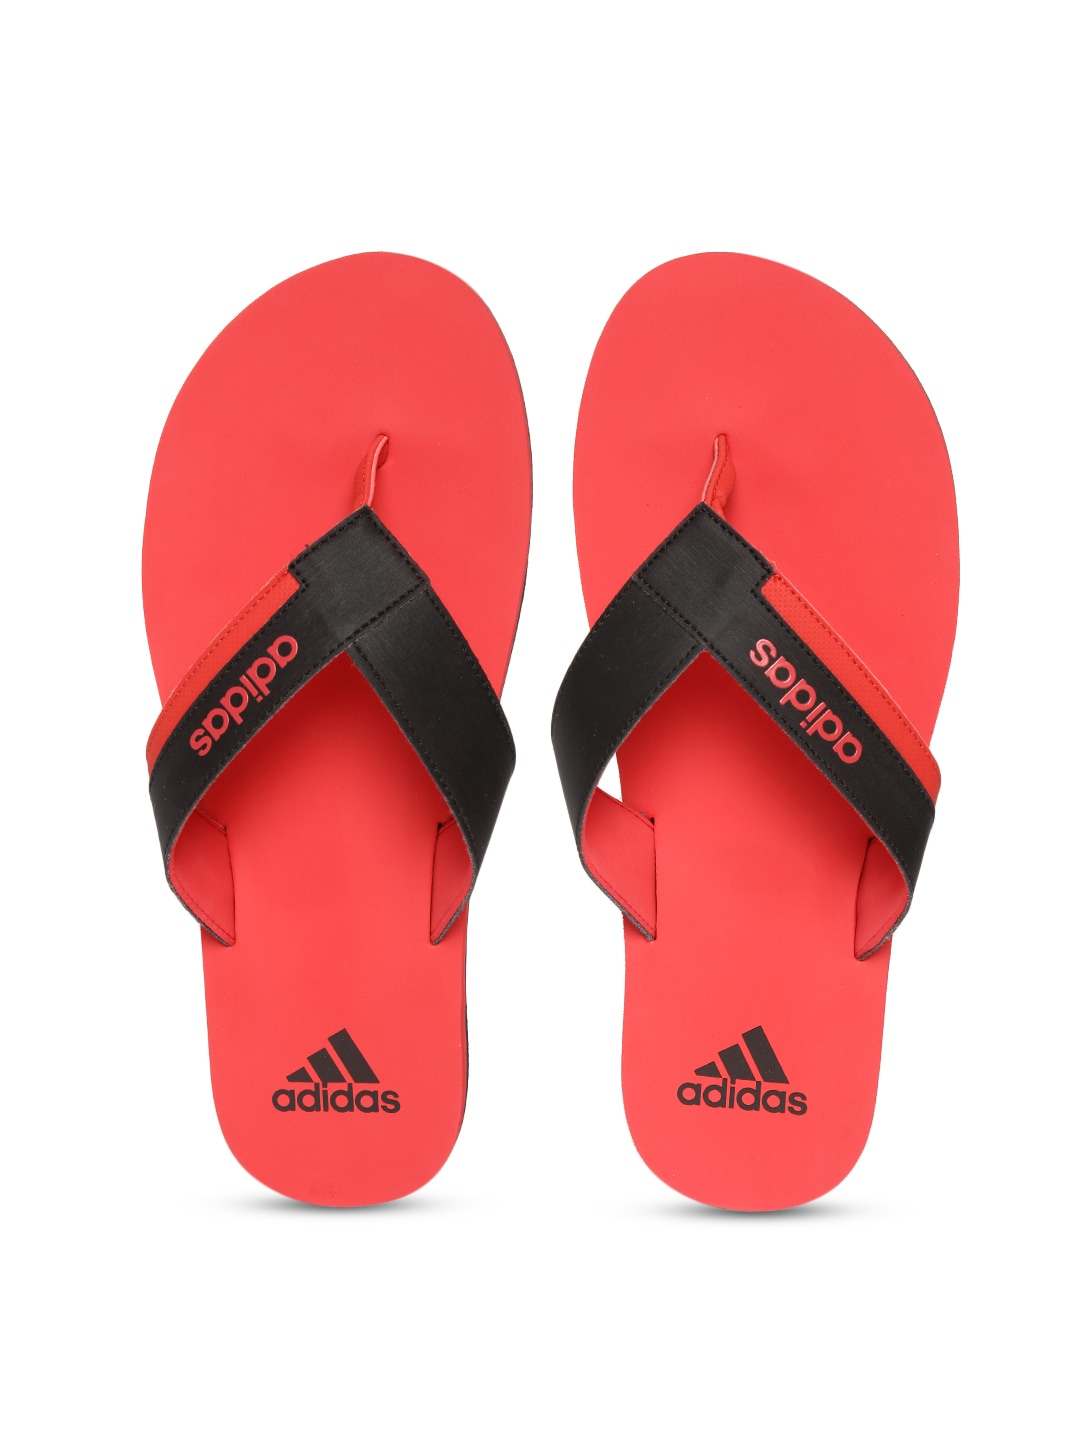 c58cb7056 Adidas Slippers - Buy Adidas Slipper   Flip Flops Online India